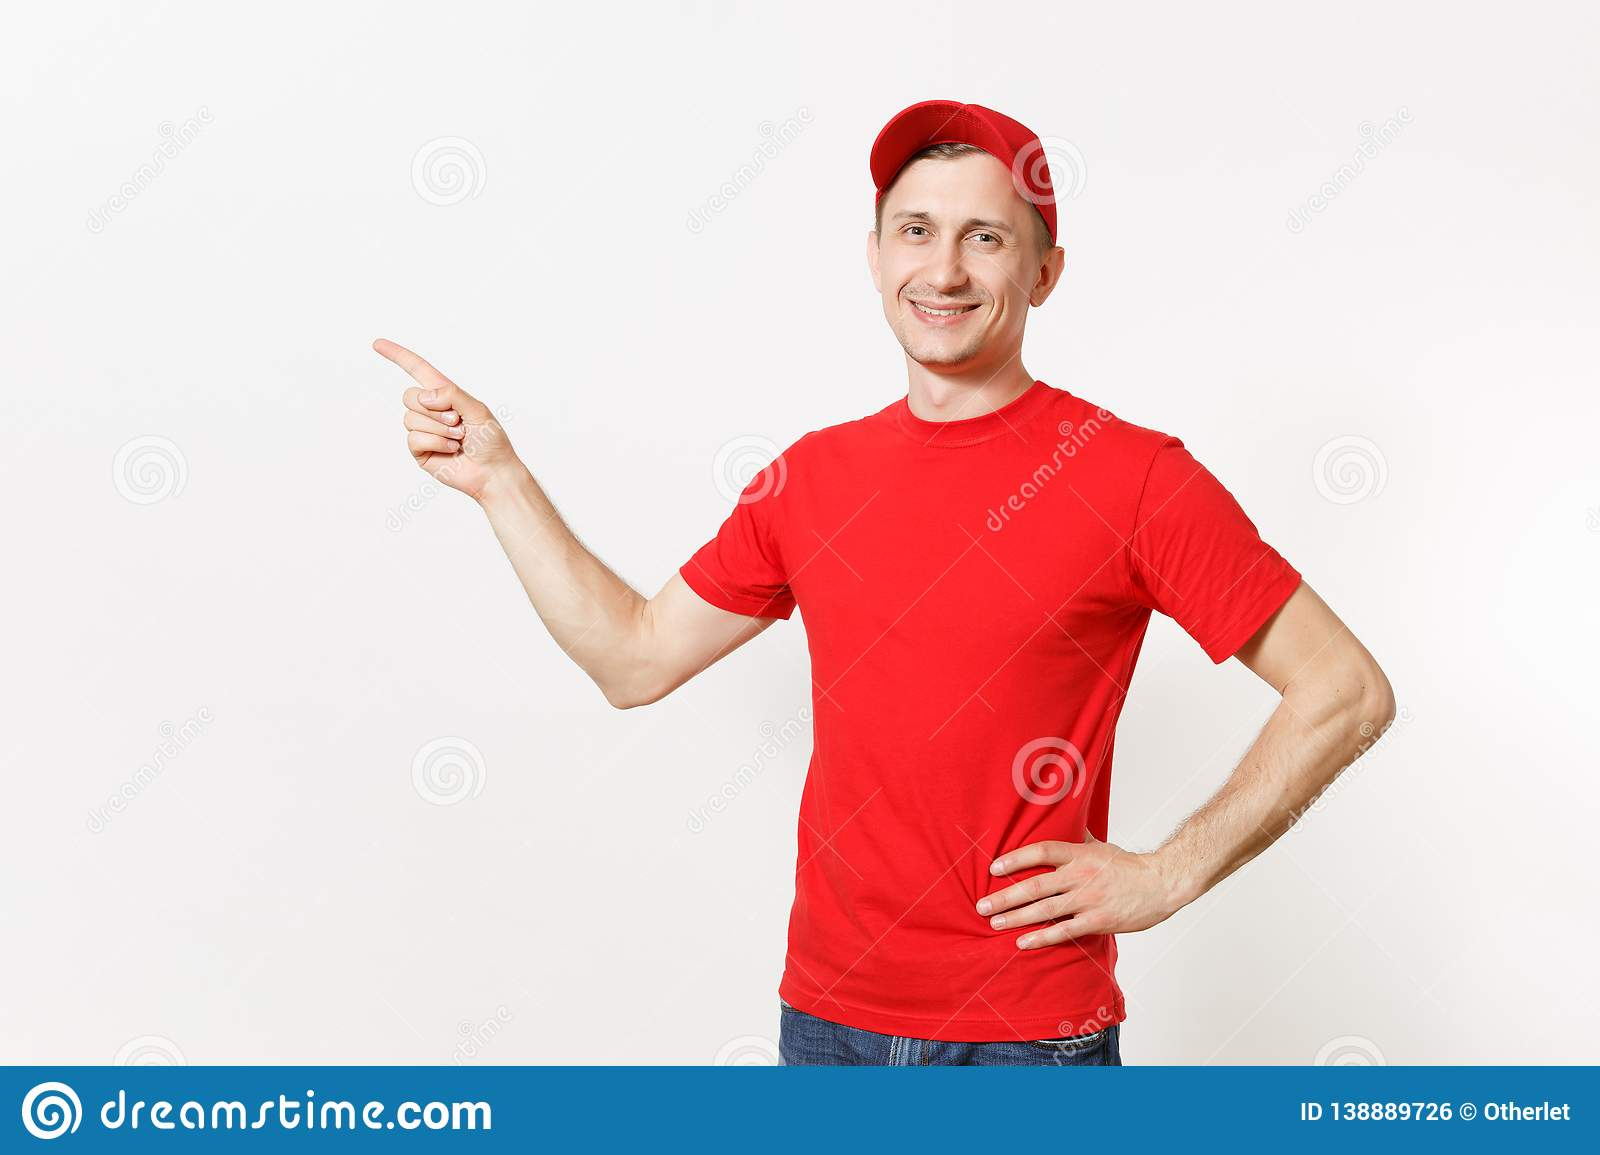 Delivery man in red uniform isolated on white background. Professional smiling male in cap, t-shirt working as courier